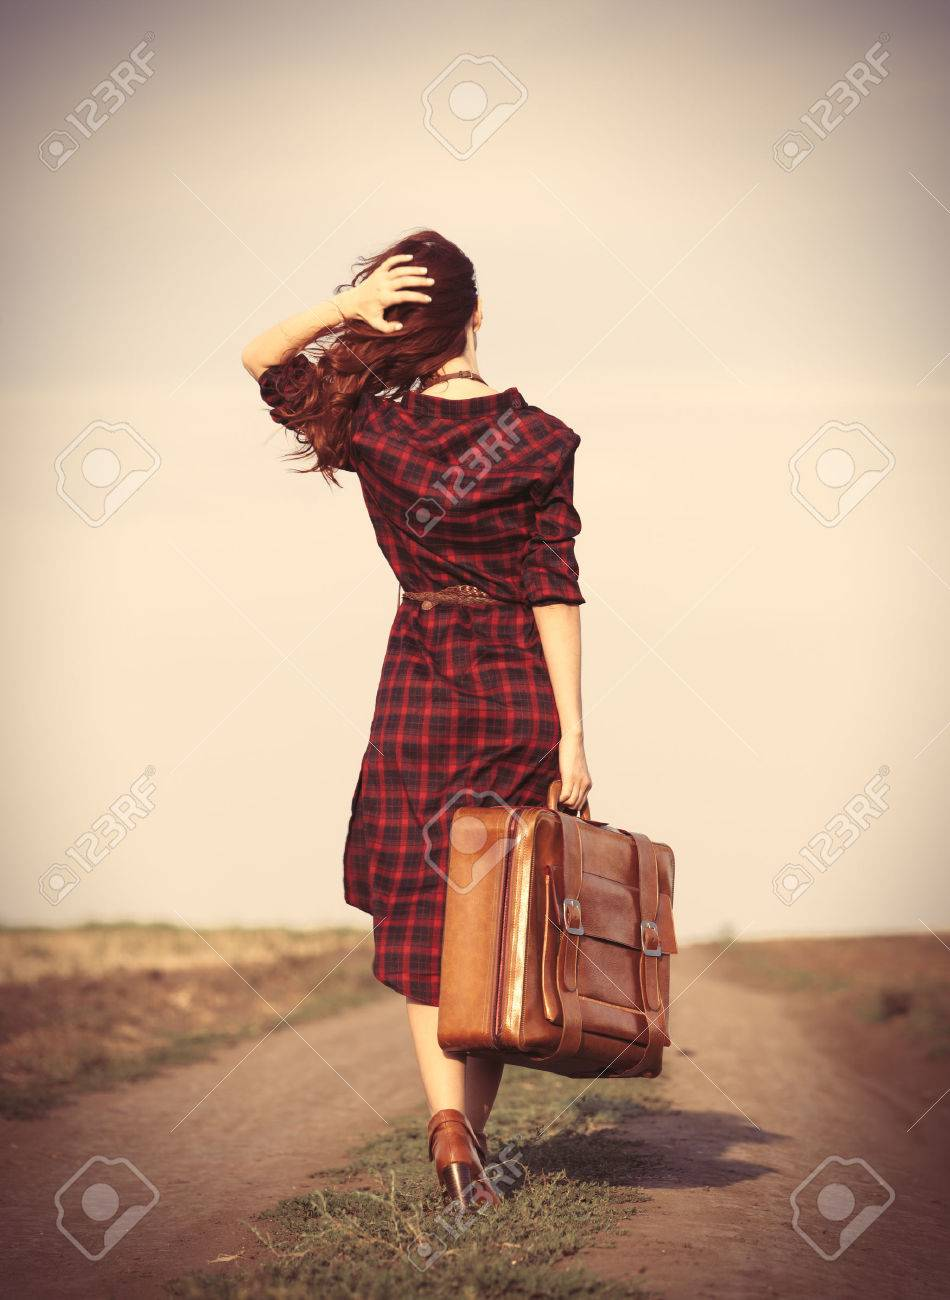 Beautiful girl in plaid dress with bag on countryside - 44351745